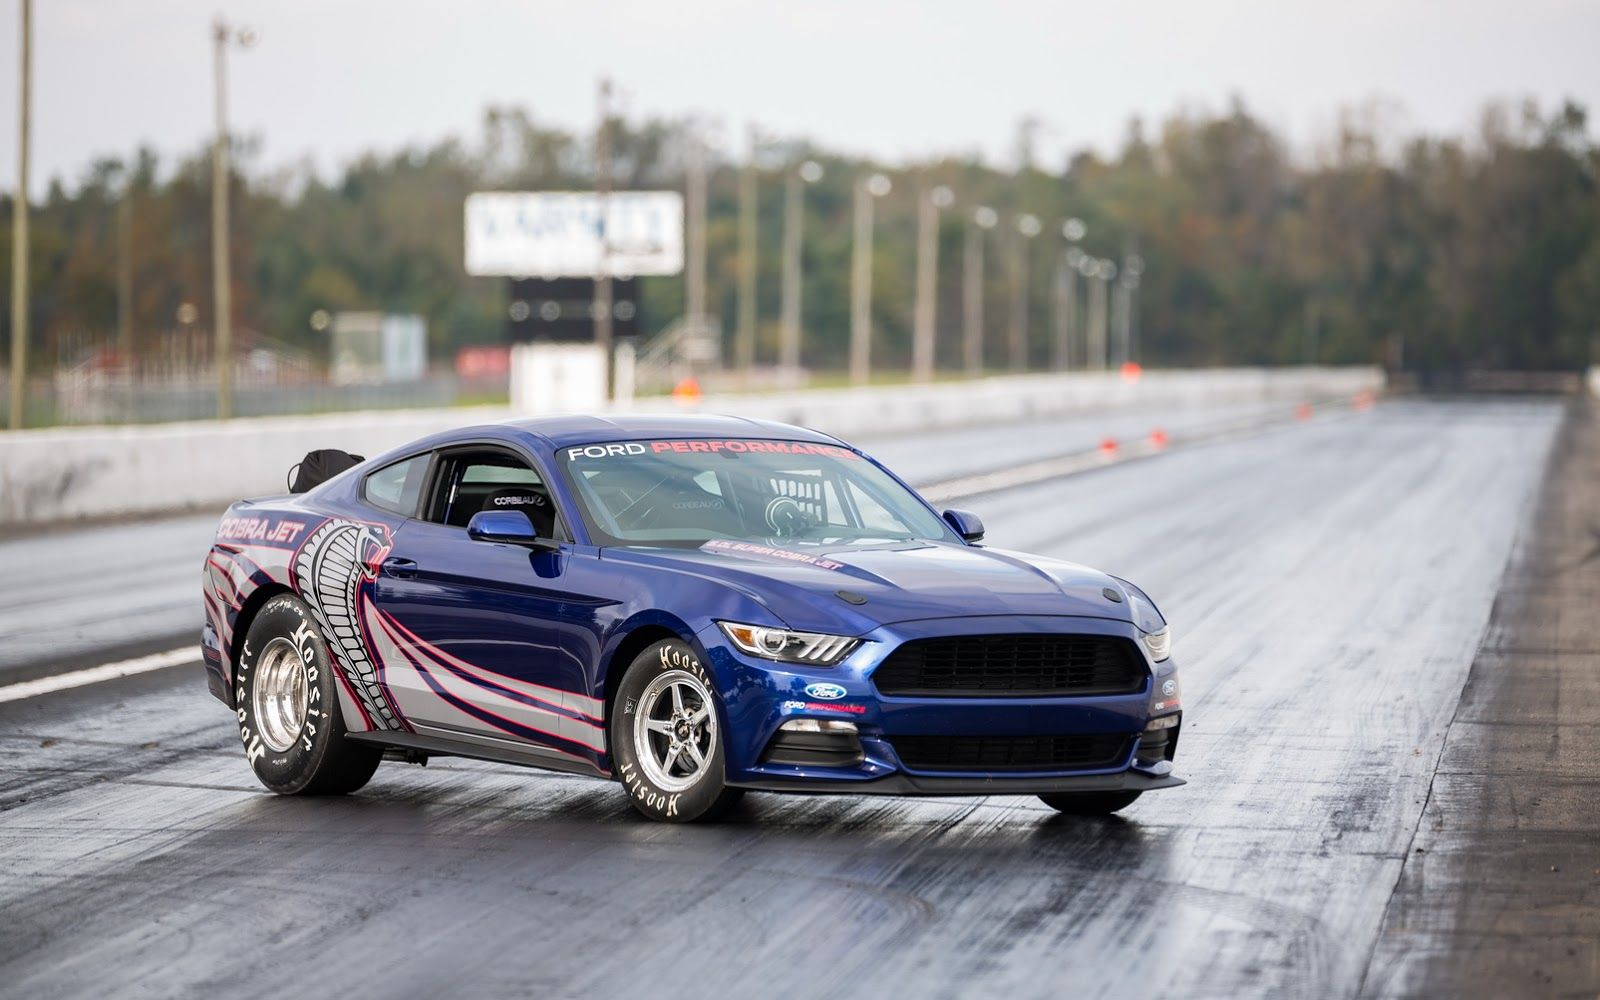 Ford S 8 Sec 1 4 Mile 2016 Cobra Jet Mustang Could Be Yours For 100k W Video Mustang Cobra New Ford Mustang Mustang Cobra Jet